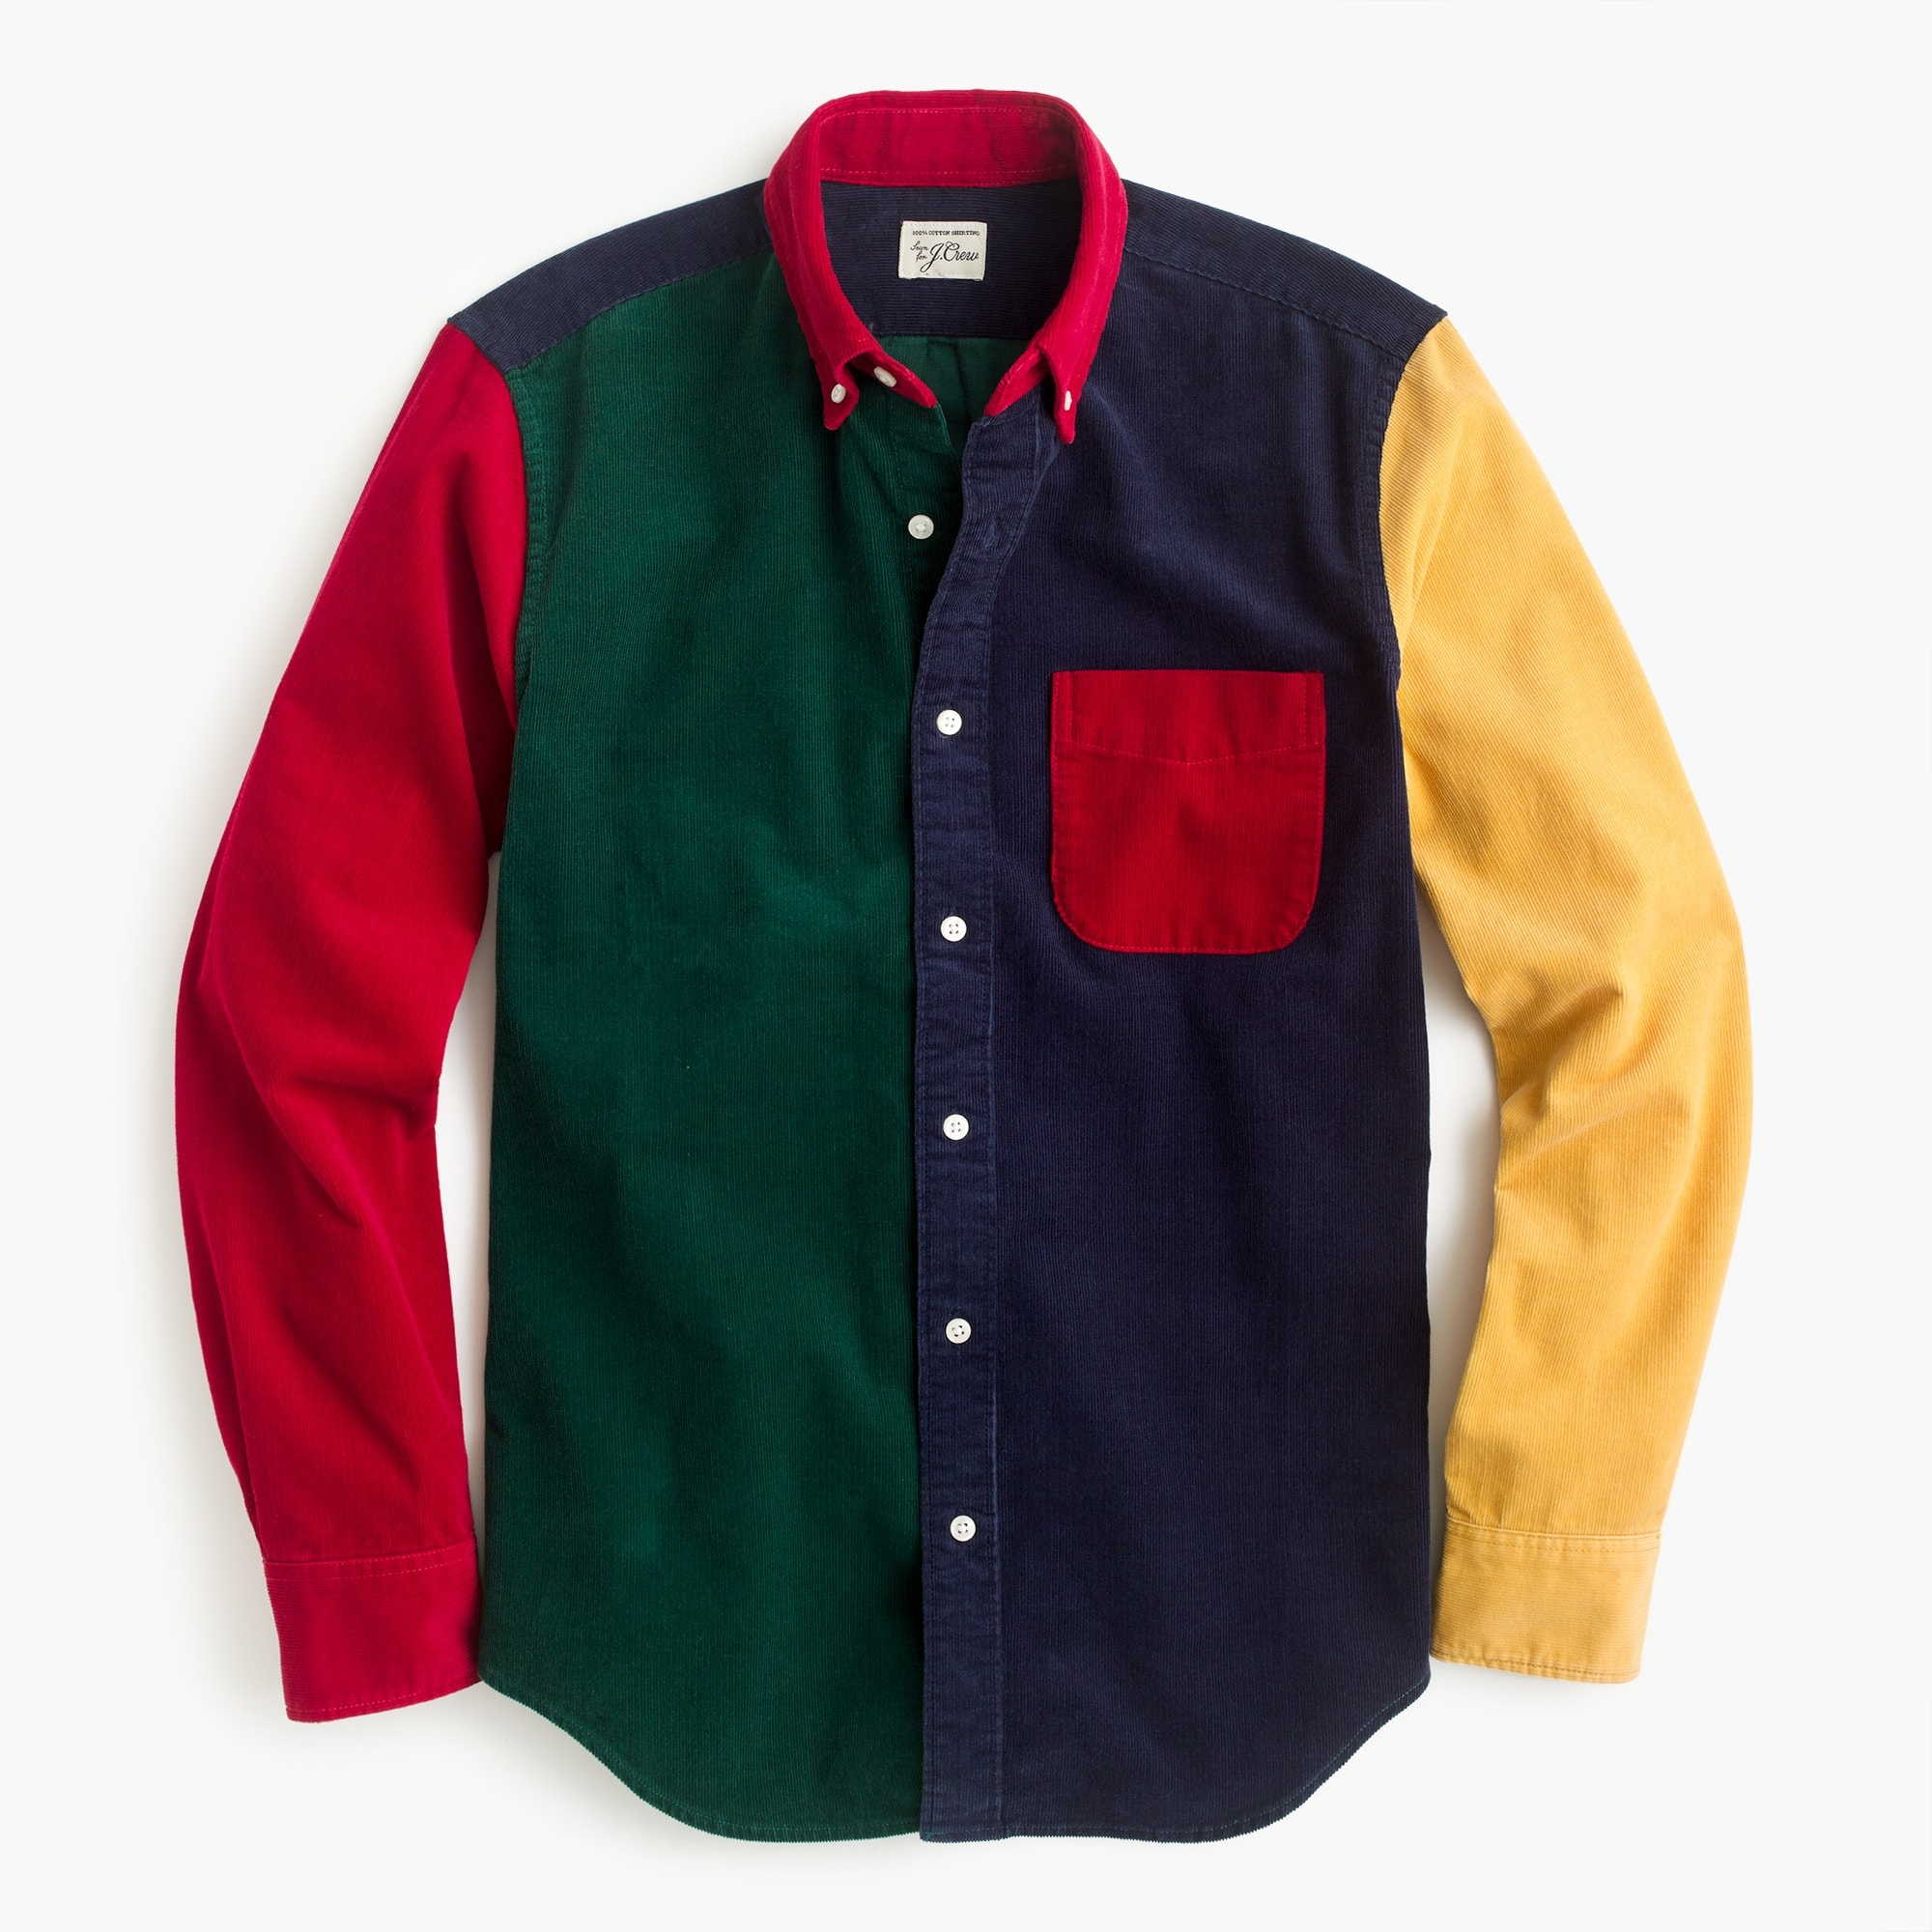 Corduroy shirt in colorblock